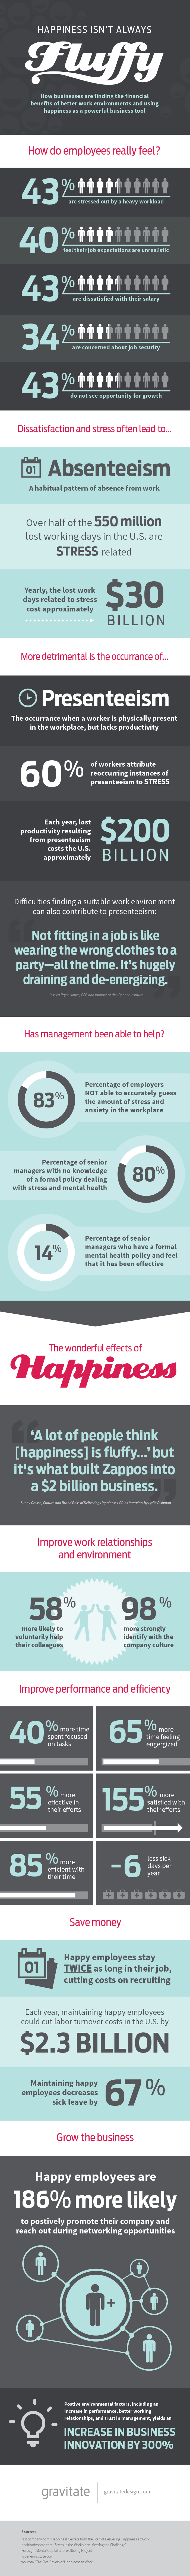 Employee Happiness as a Business Tool Infographic